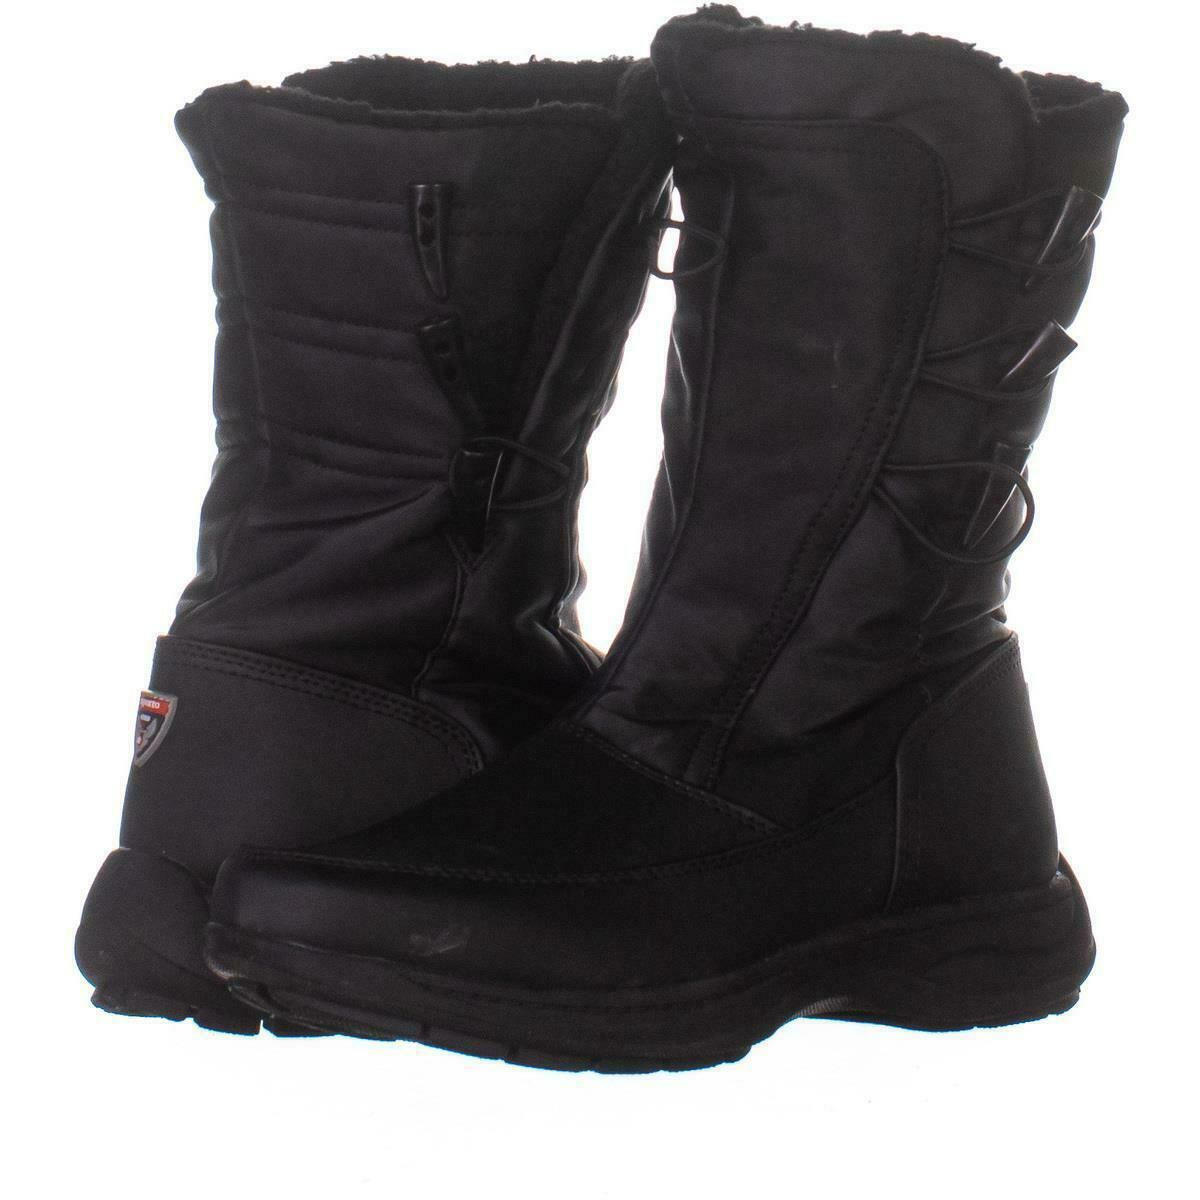 Primary image for Sporto Dana Mid Calf Winter Boots 984, Black, 9 US